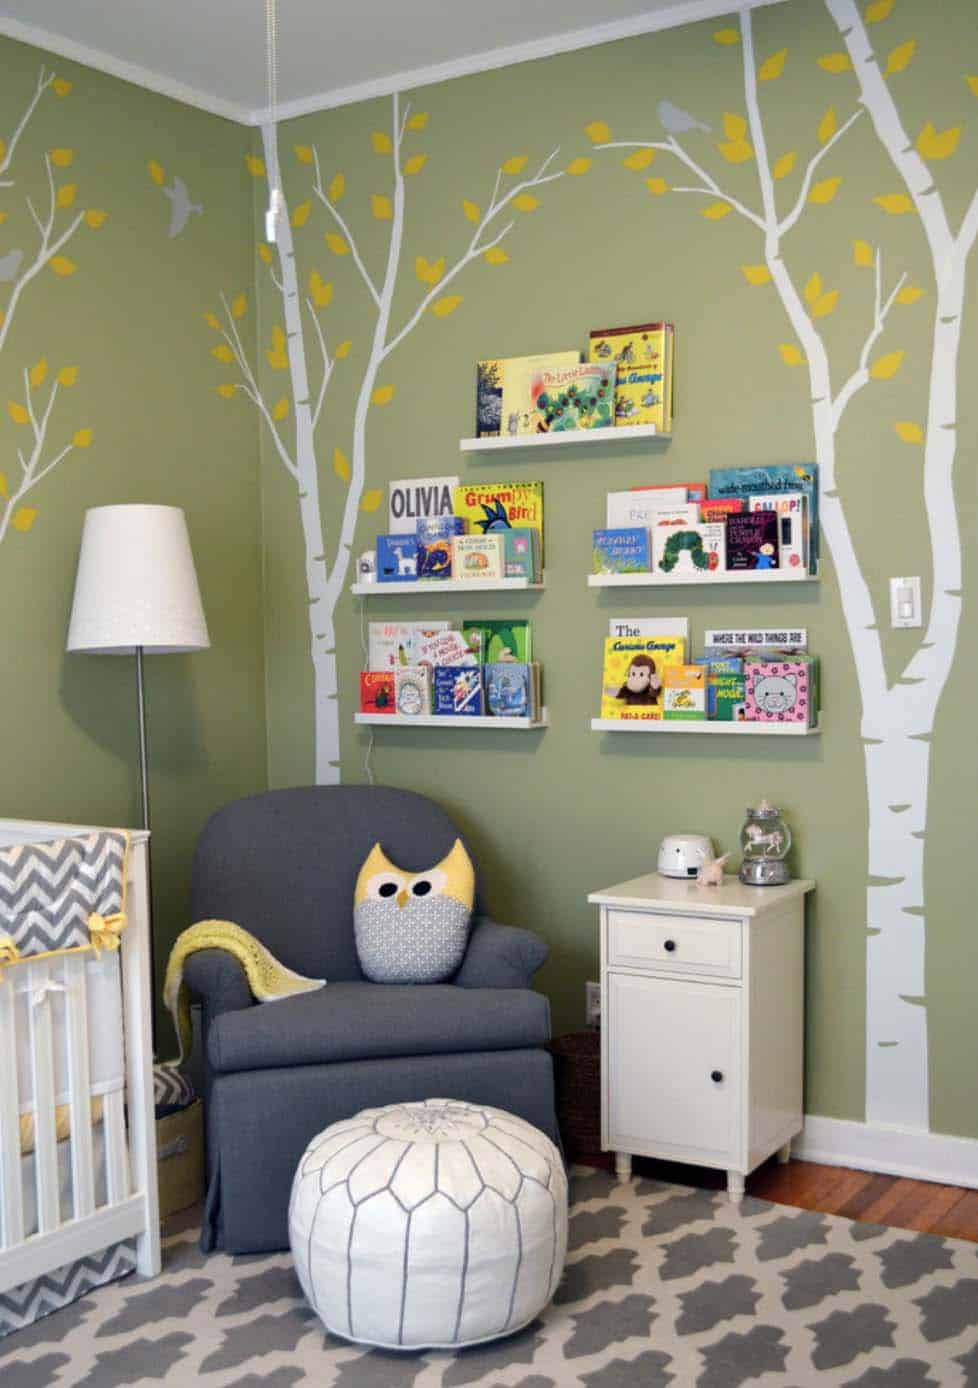 Stylish Nursery Decorating Ideas-42-1 Kindesign